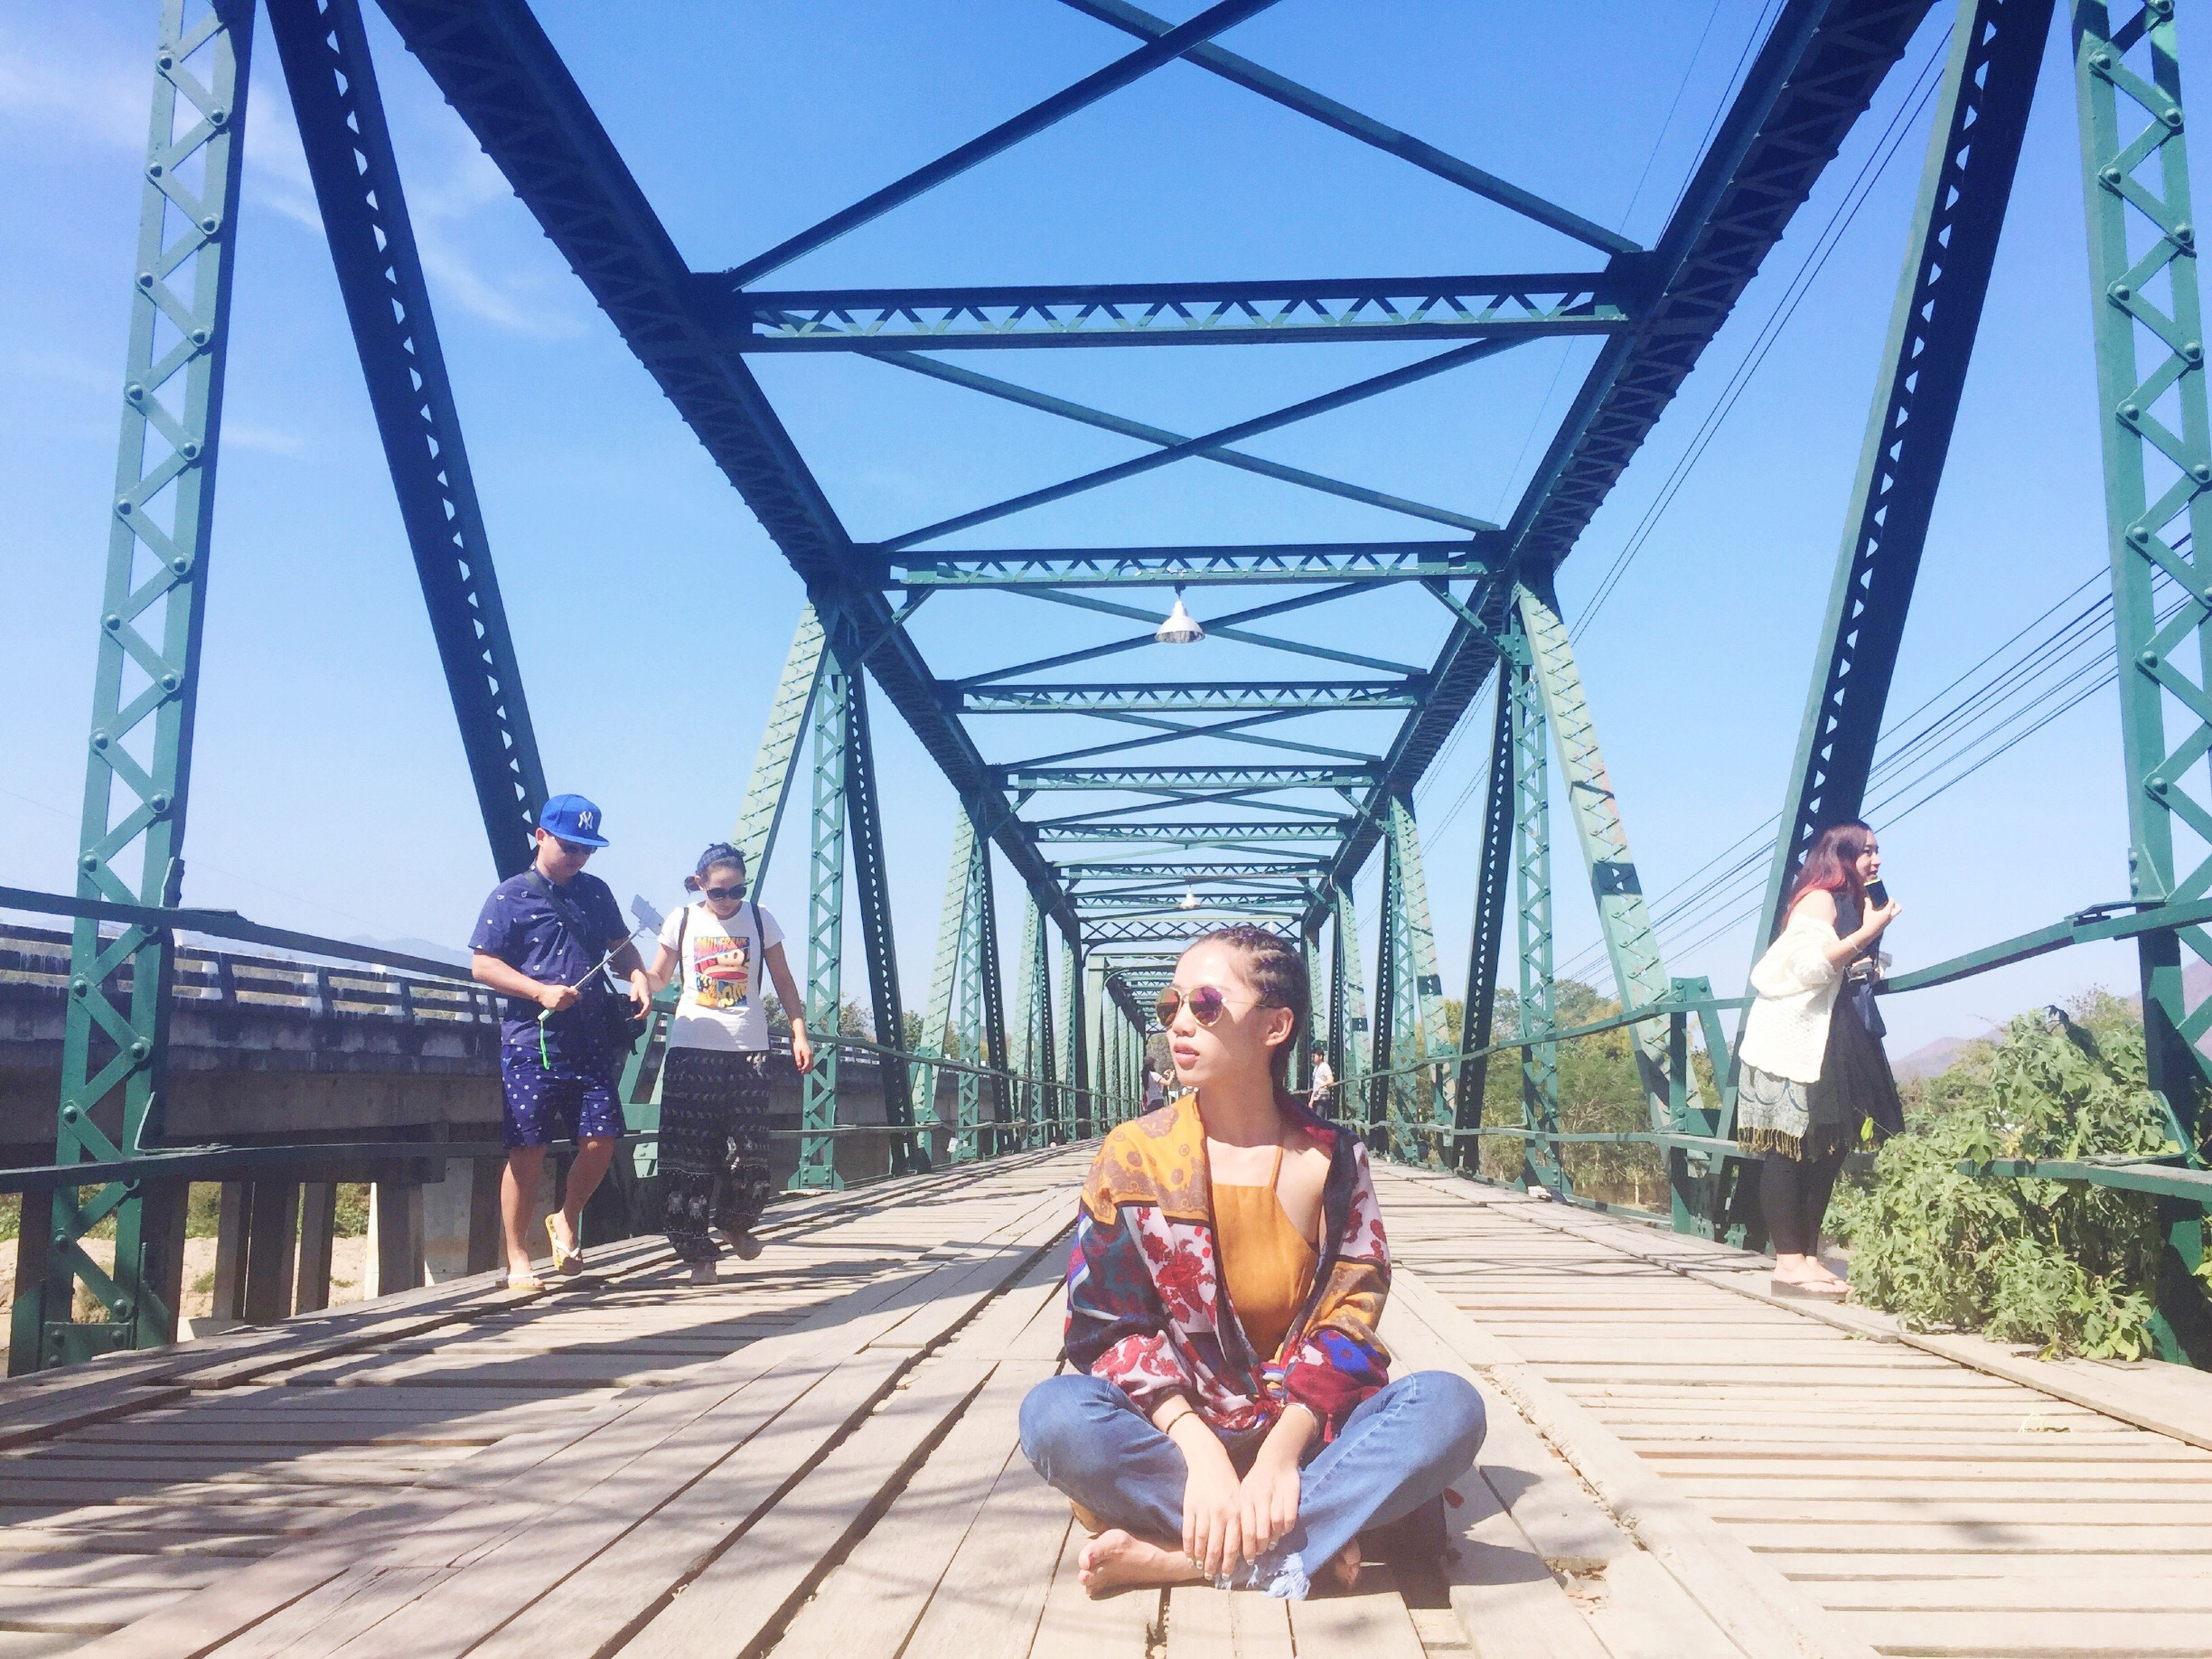 lifestyles, leisure activity, casual clothing, built structure, architecture, person, full length, bridge - man made structure, railing, young adult, travel, young women, sunlight, connection, childhood, day, looking at camera, tourism